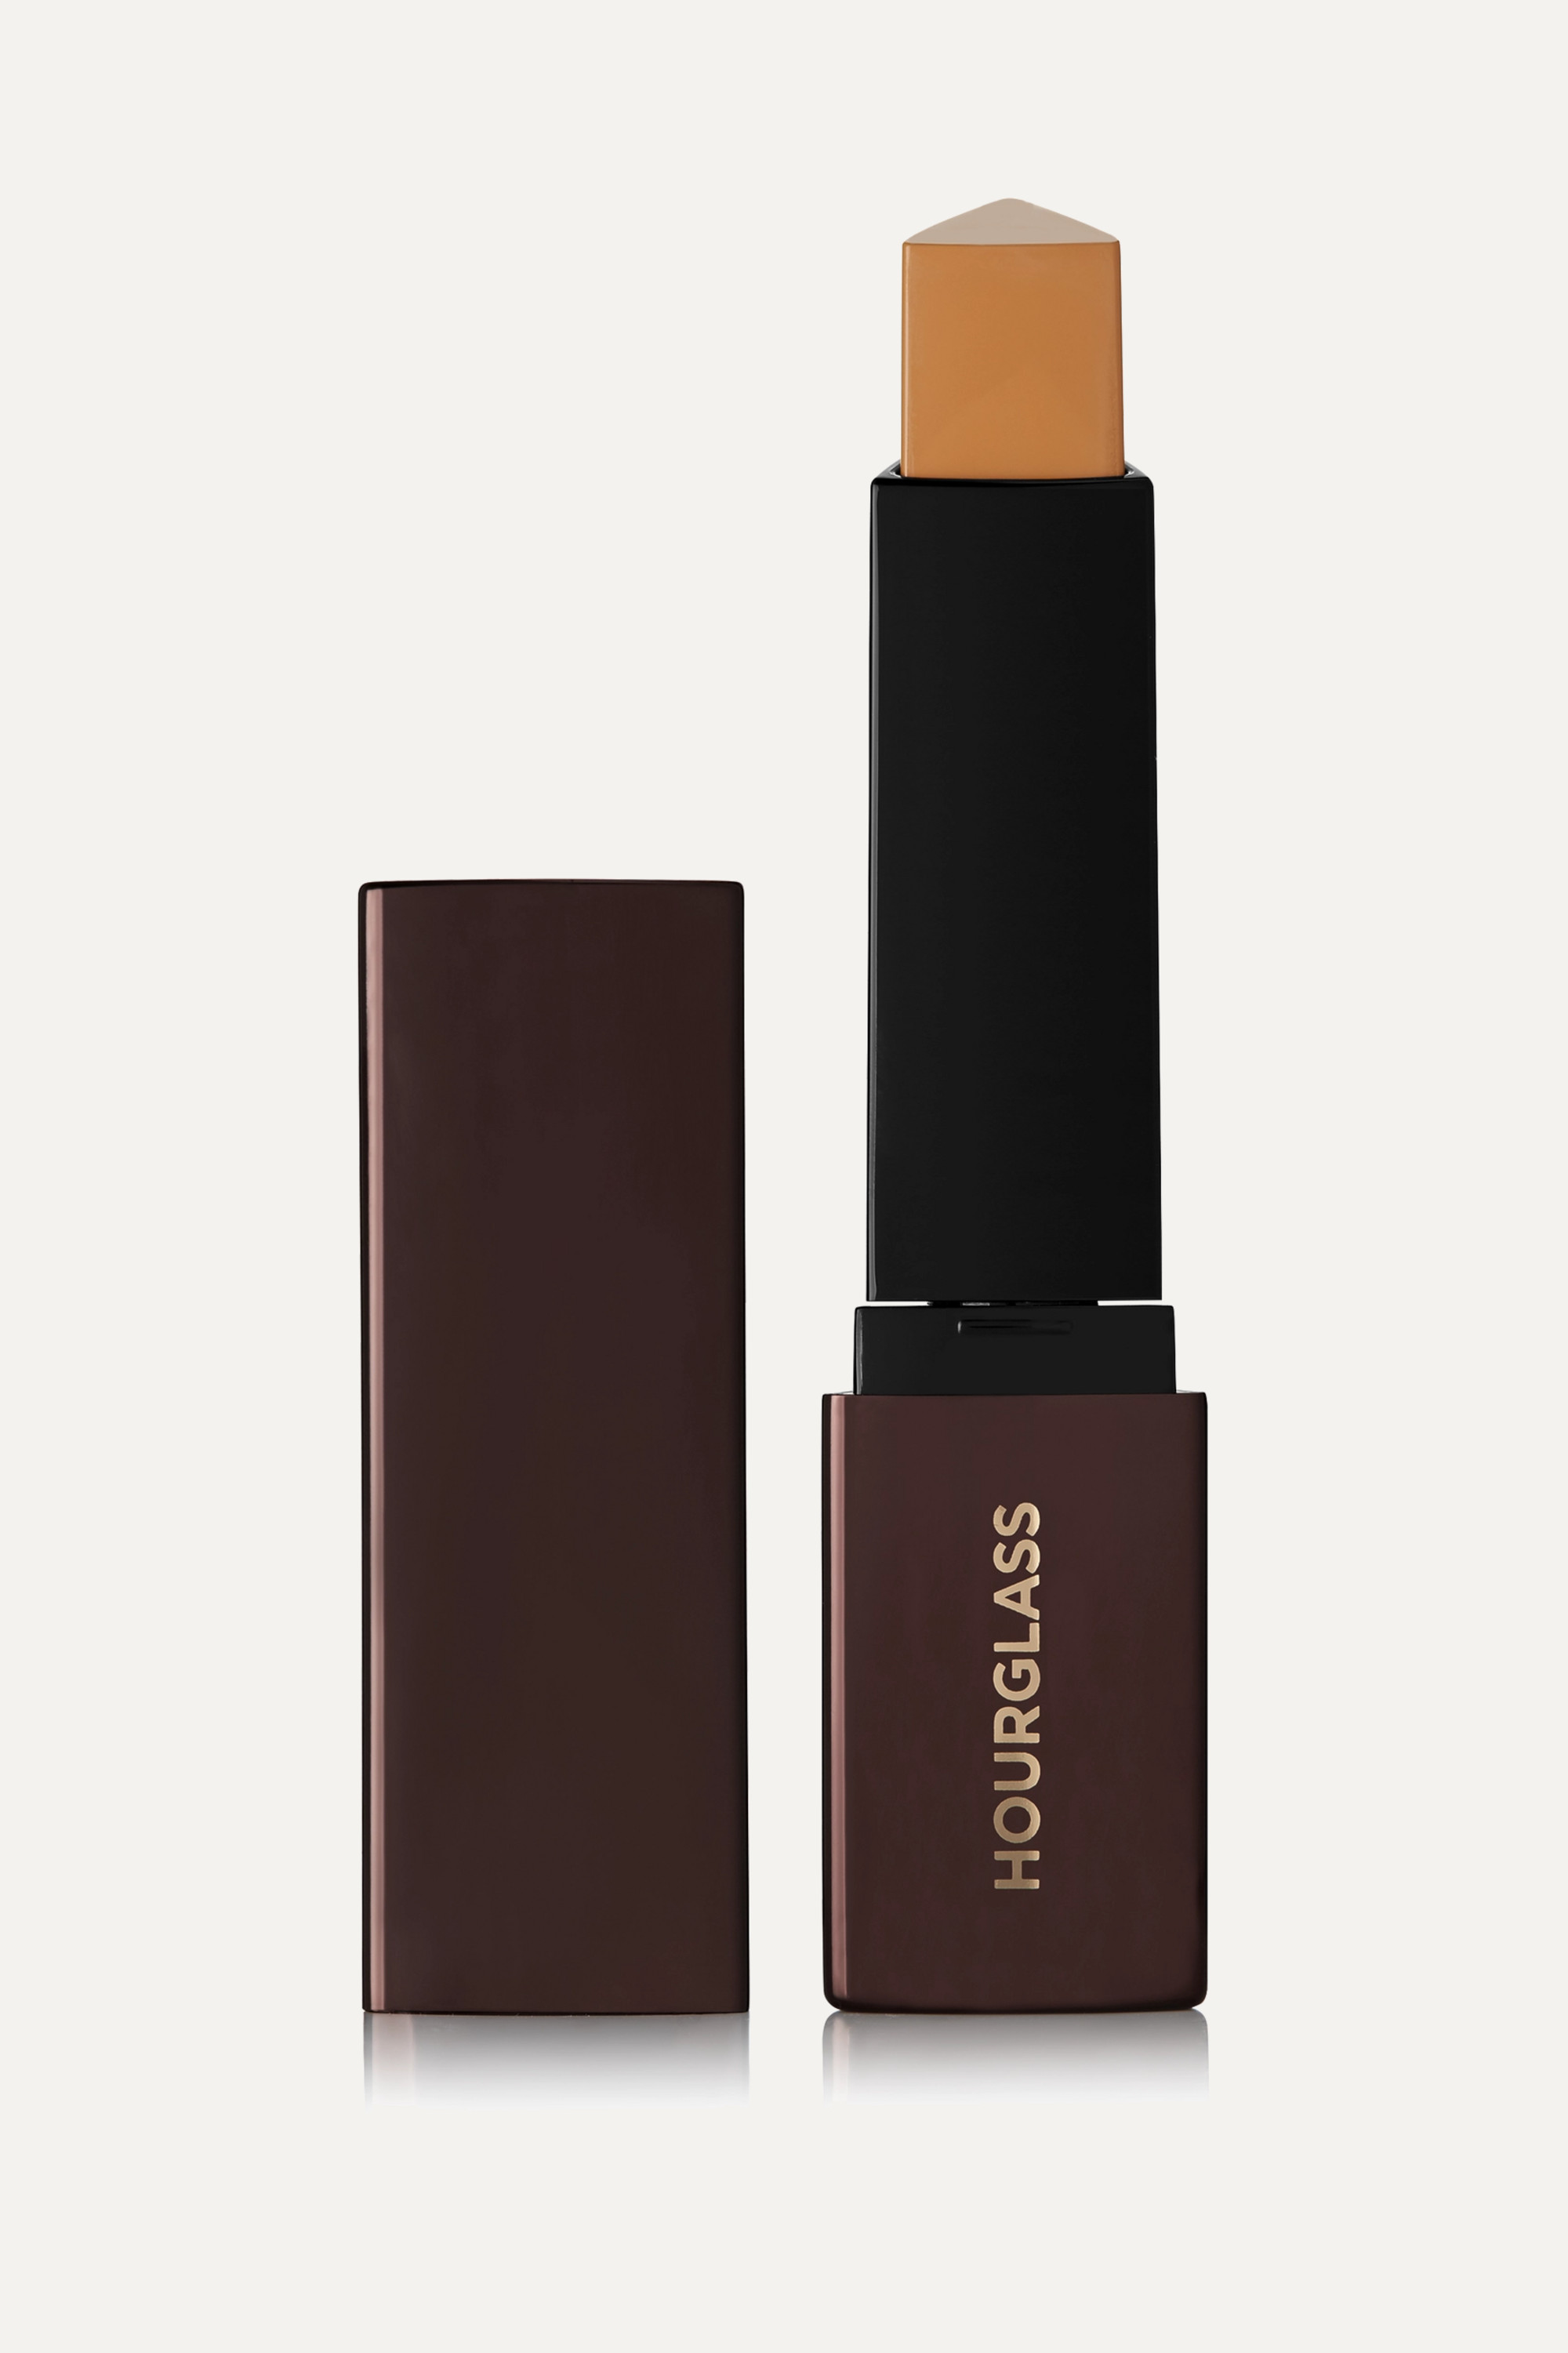 Hourglass Vanish Seamless Finish Foundation Stick - Warm Honey